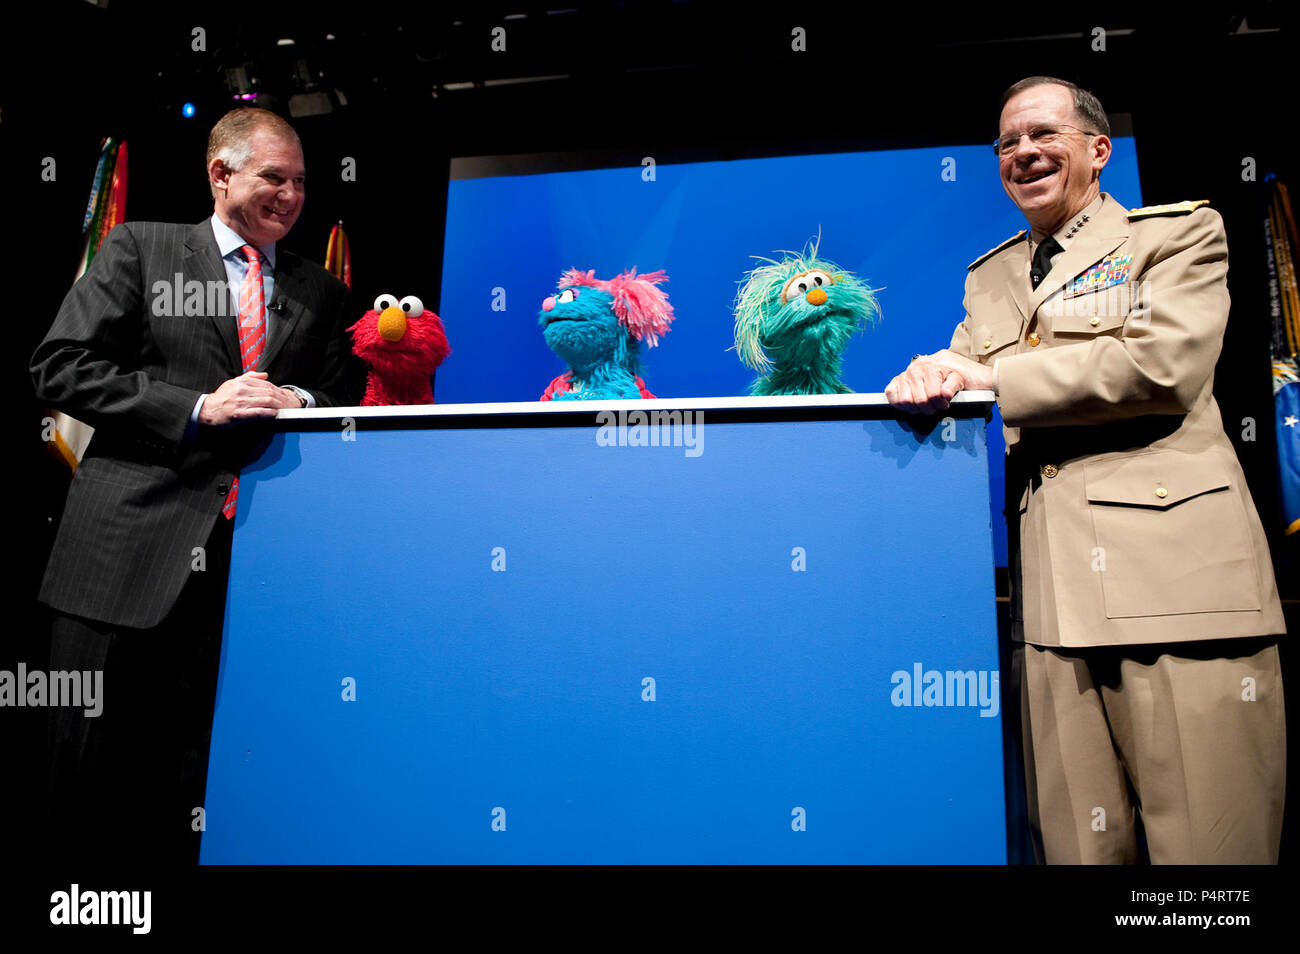 Deputy Secretary of Defense William J. Lynn, left, and Chairman of the Joint Chiefs of Staff Navy Adm. Mike Mullen help Sesame Street muppets Elmo, Jesse and Rosita host a preview of the PBS special 'When Families Grieve' at the Pentagon April 13, 2010. The program features several families coping with the loss of a parent and the skills that help them move forward. (DoD - Stock Image